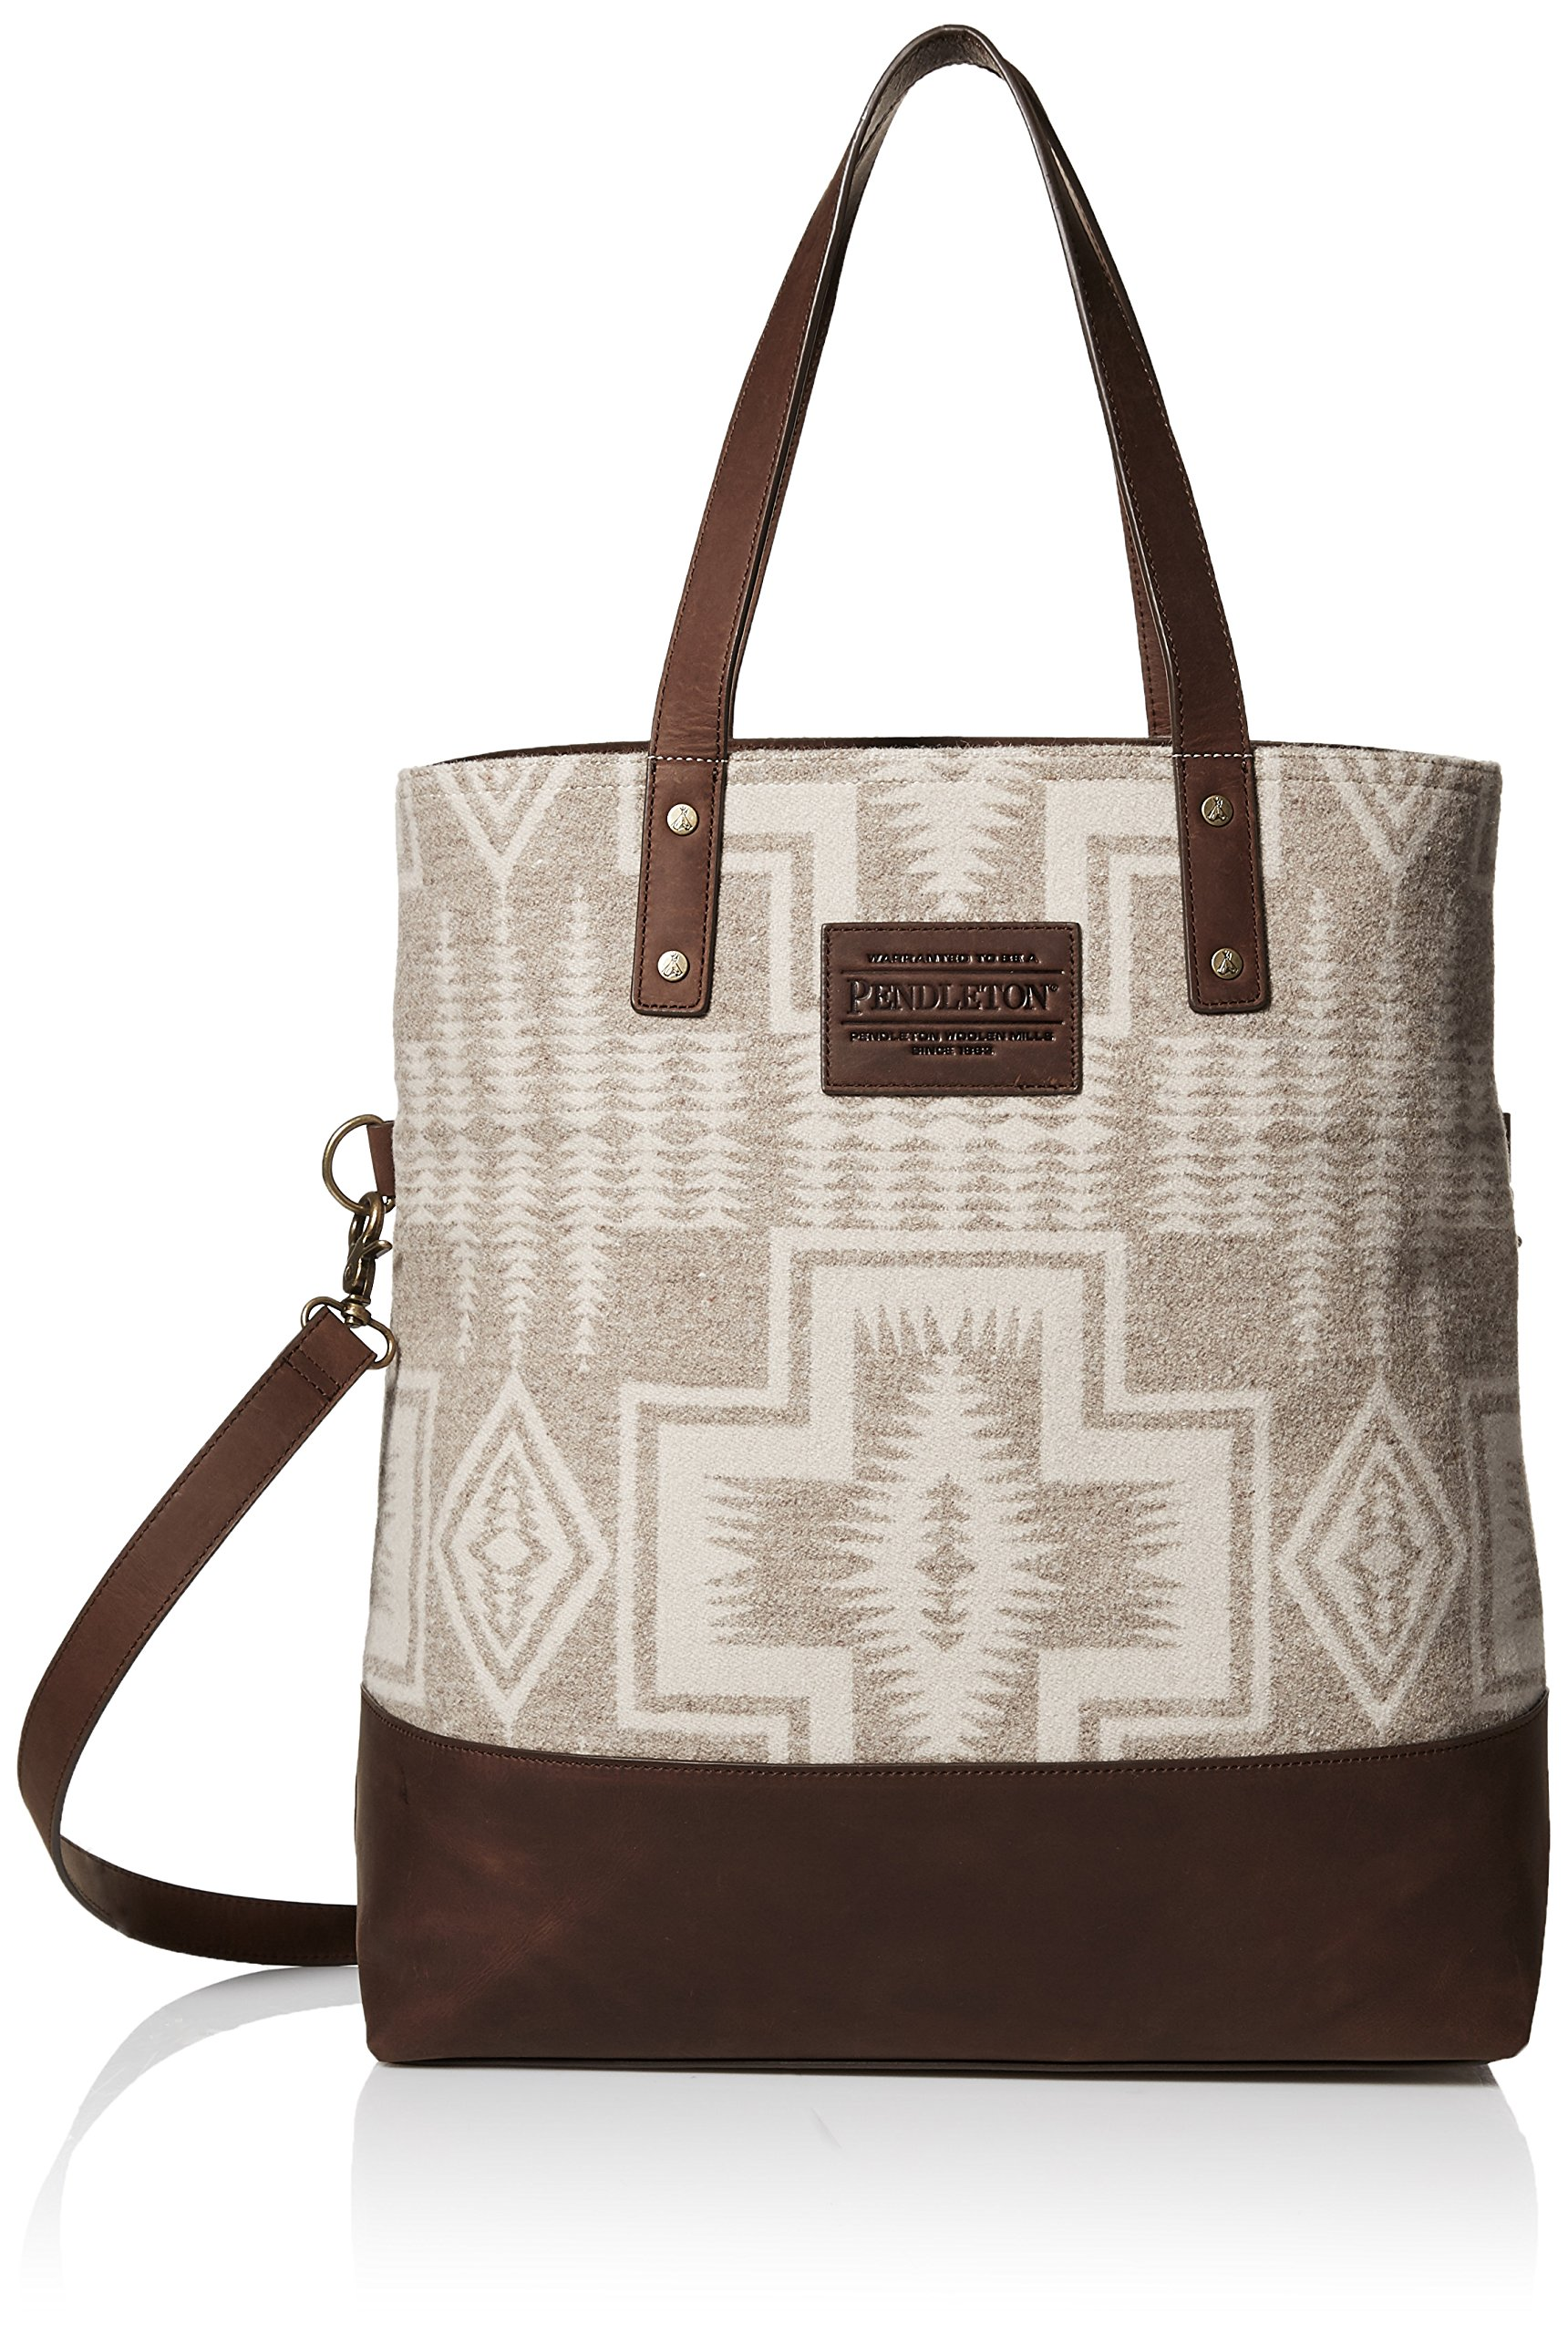 Pendleton Women's Harding Long Tote Accessory, -harding tonal, One Size